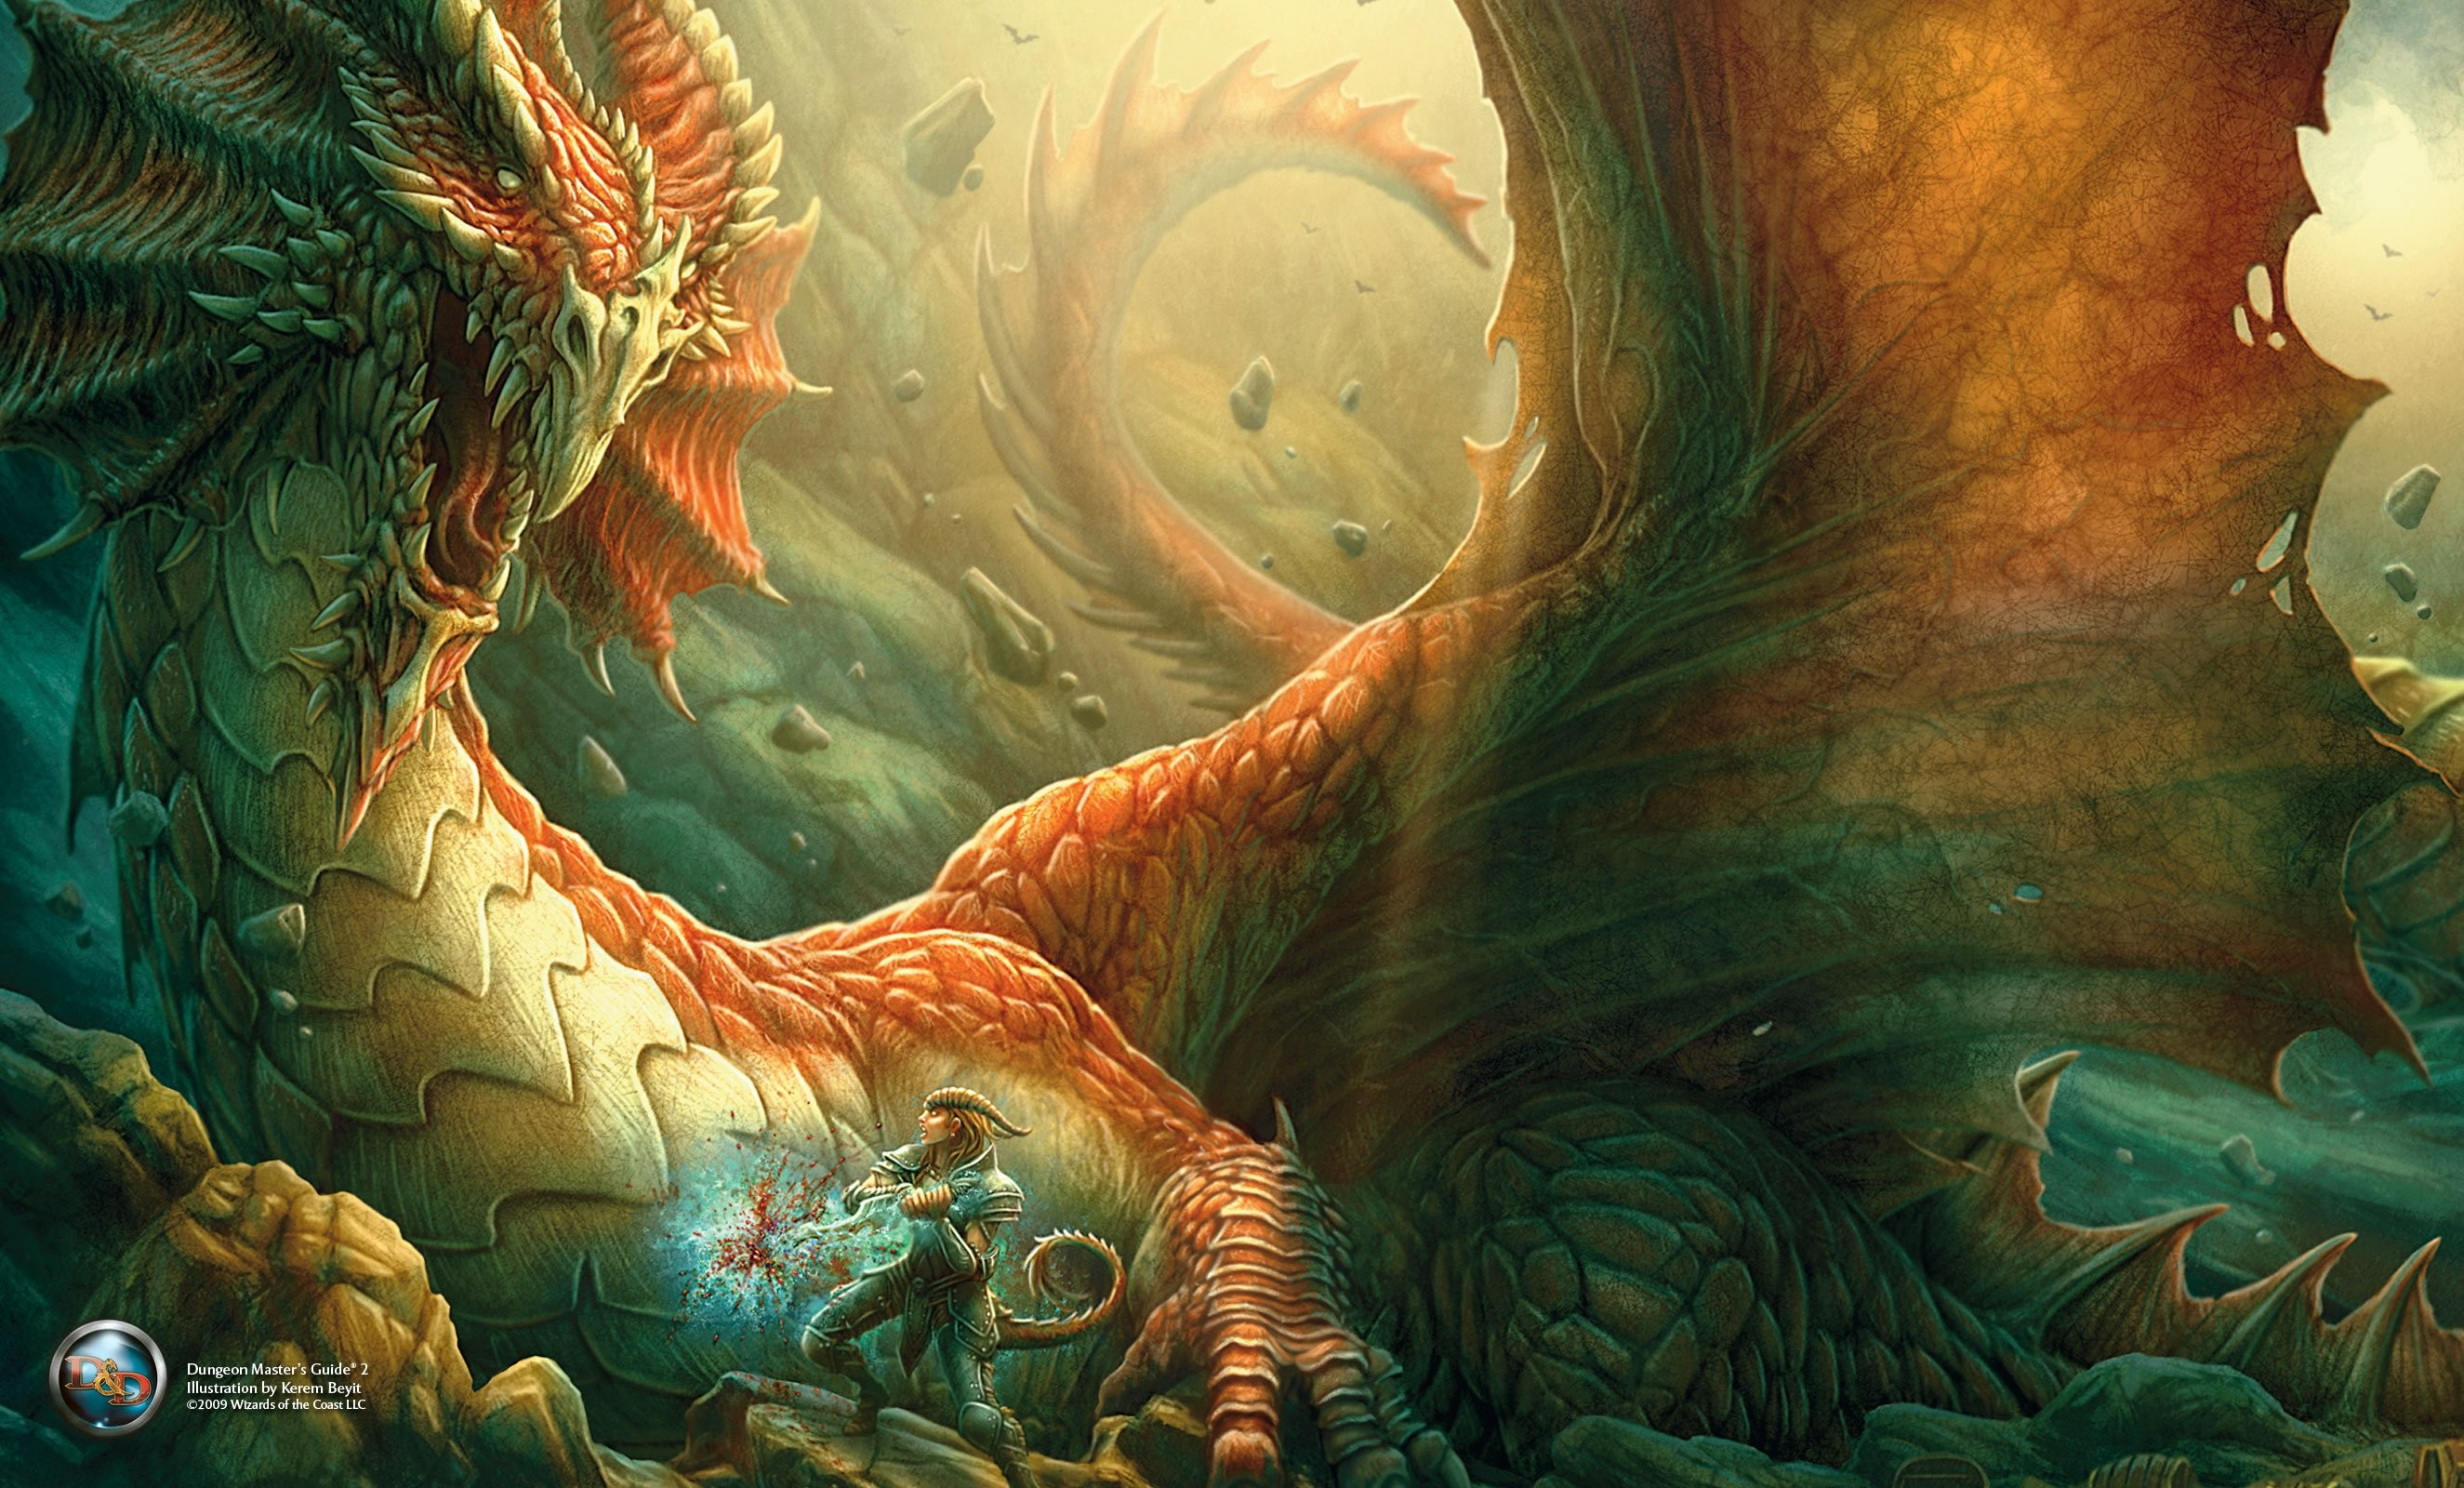 DUNGEONS-AND-DRAGONS fantasy adventure board rpg dungeons dragons (44)  wallpaper | | 388772 | WallpaperUP